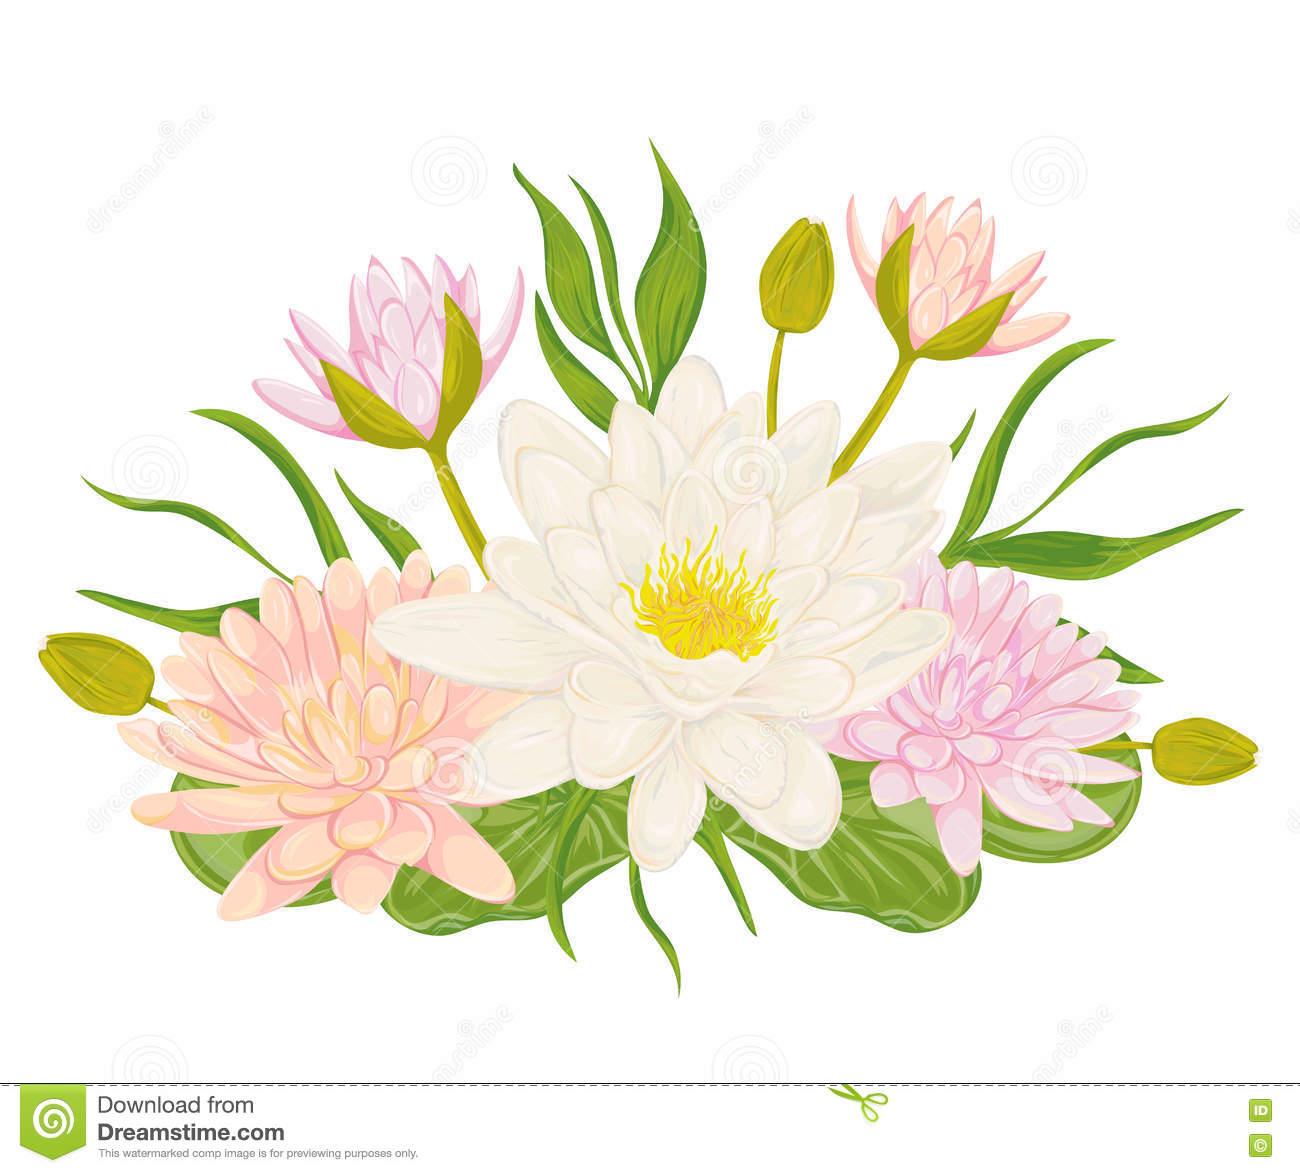 Water lily set collection decorative design elements for wedding collection decorative design elements for wedding invitations and birthday cards stopboris Images